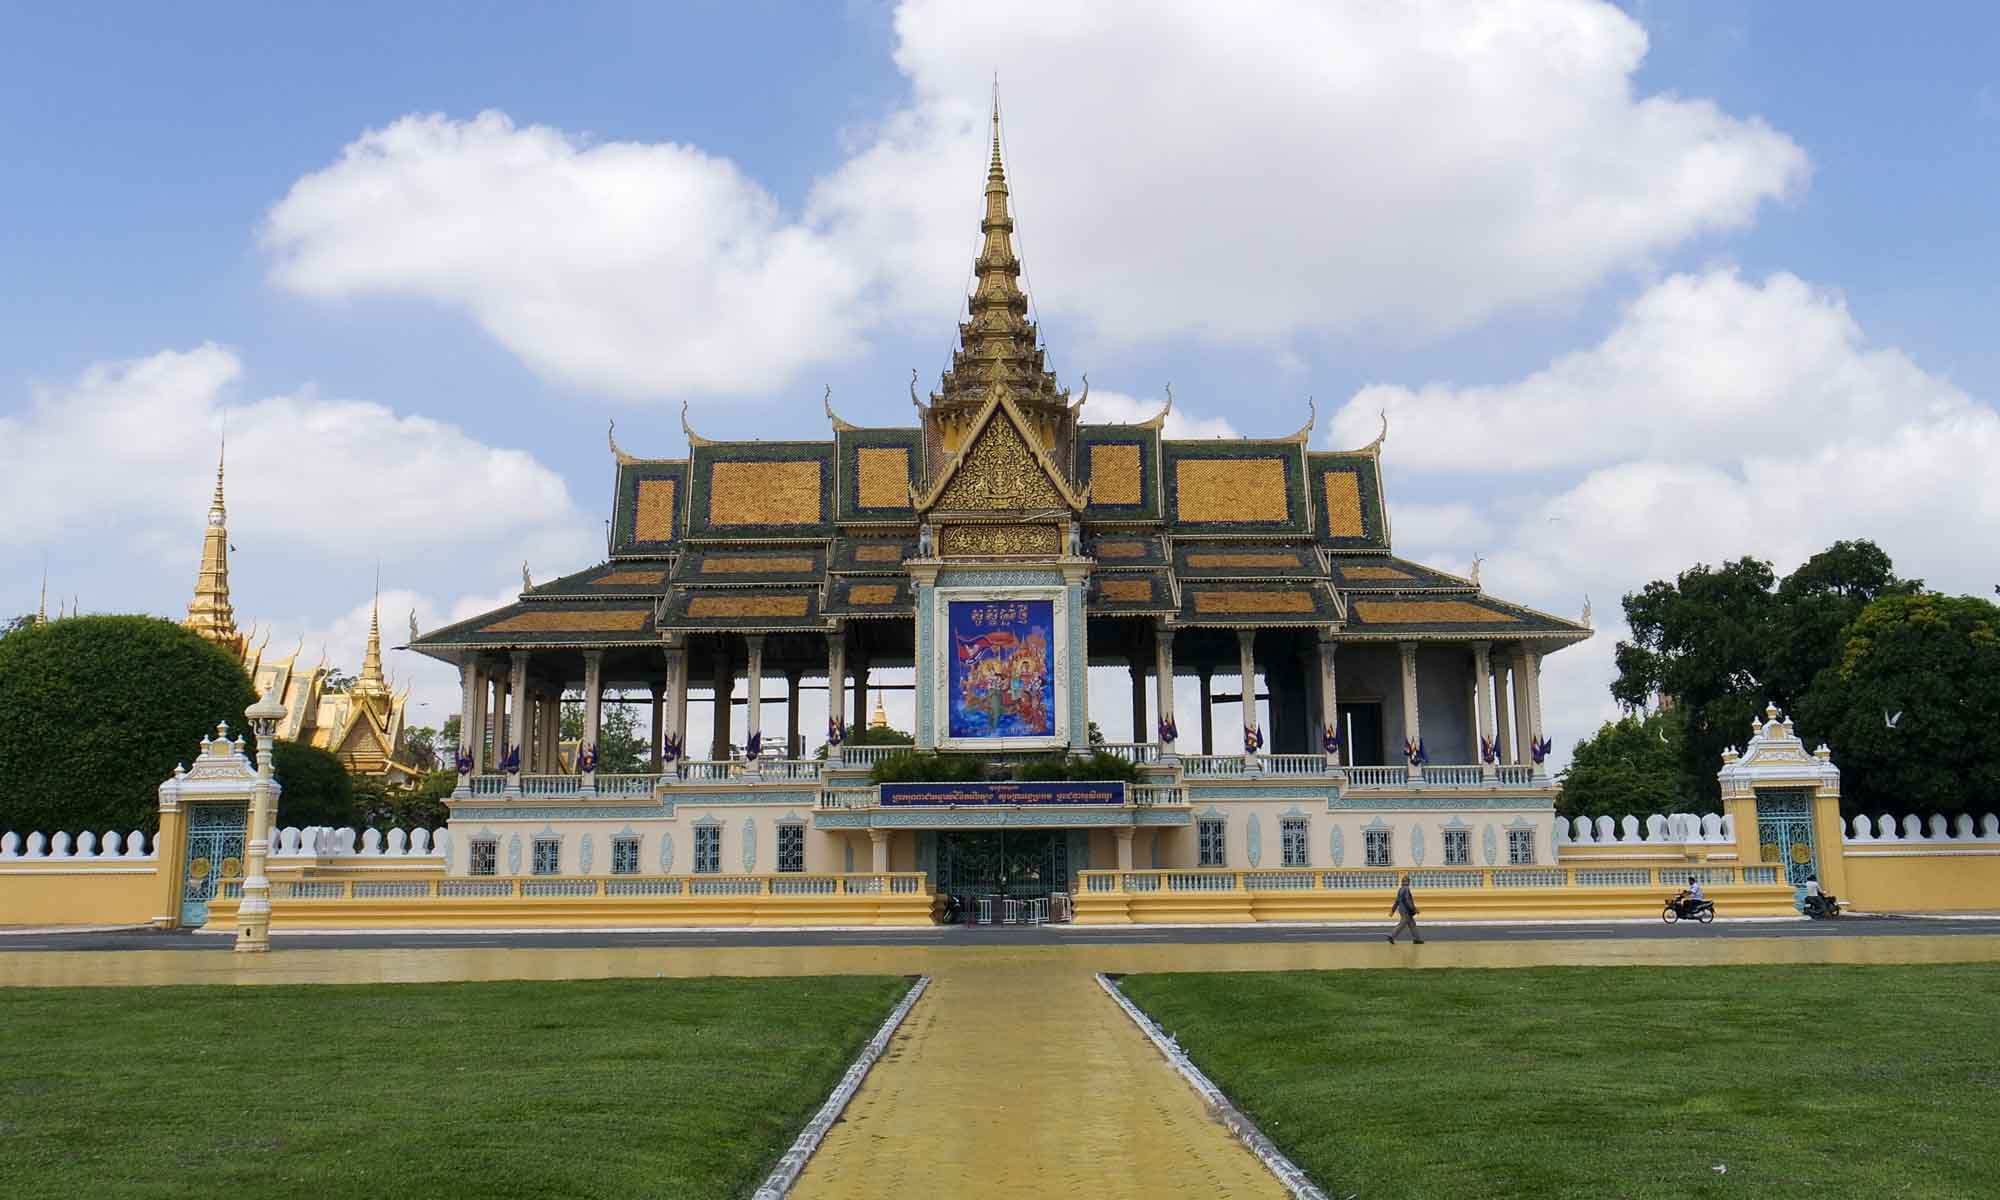 Moonlight Pavilion and The Throne Hall at the Royal Palace area